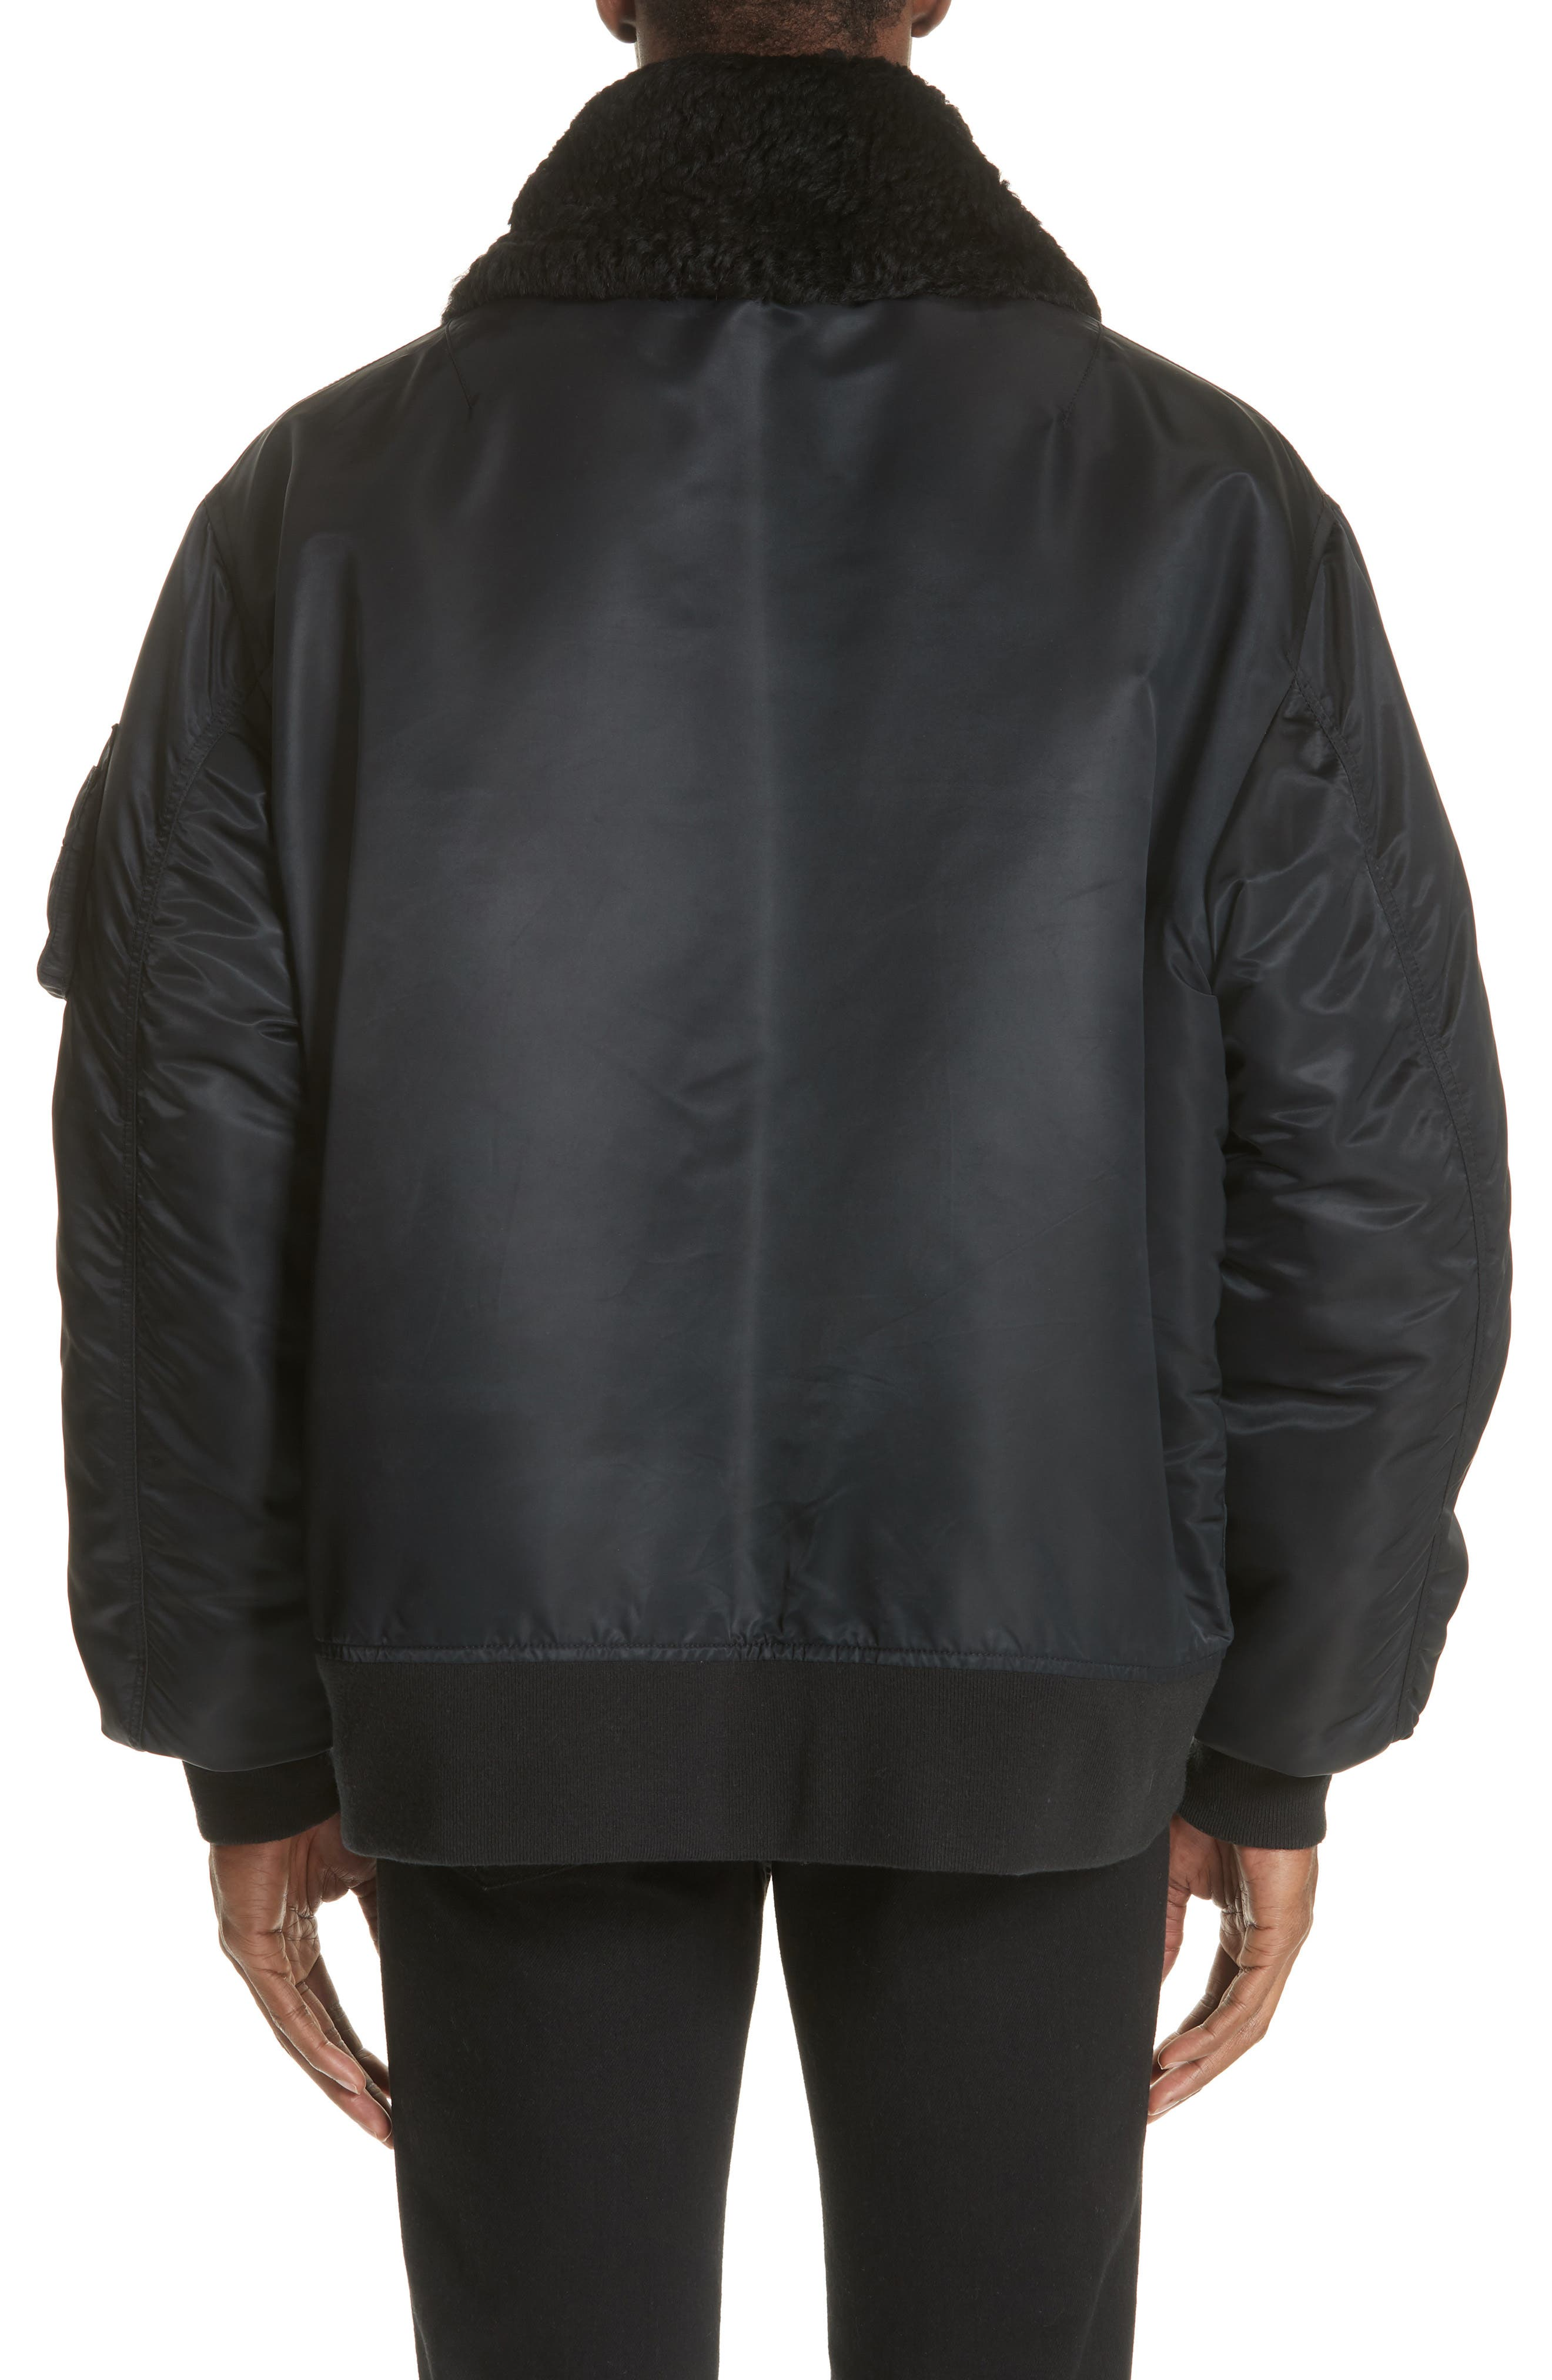 Oversize Bomber Jacket with Genuine Shearling Collar,                             Alternate thumbnail 2, color,                             BLACK